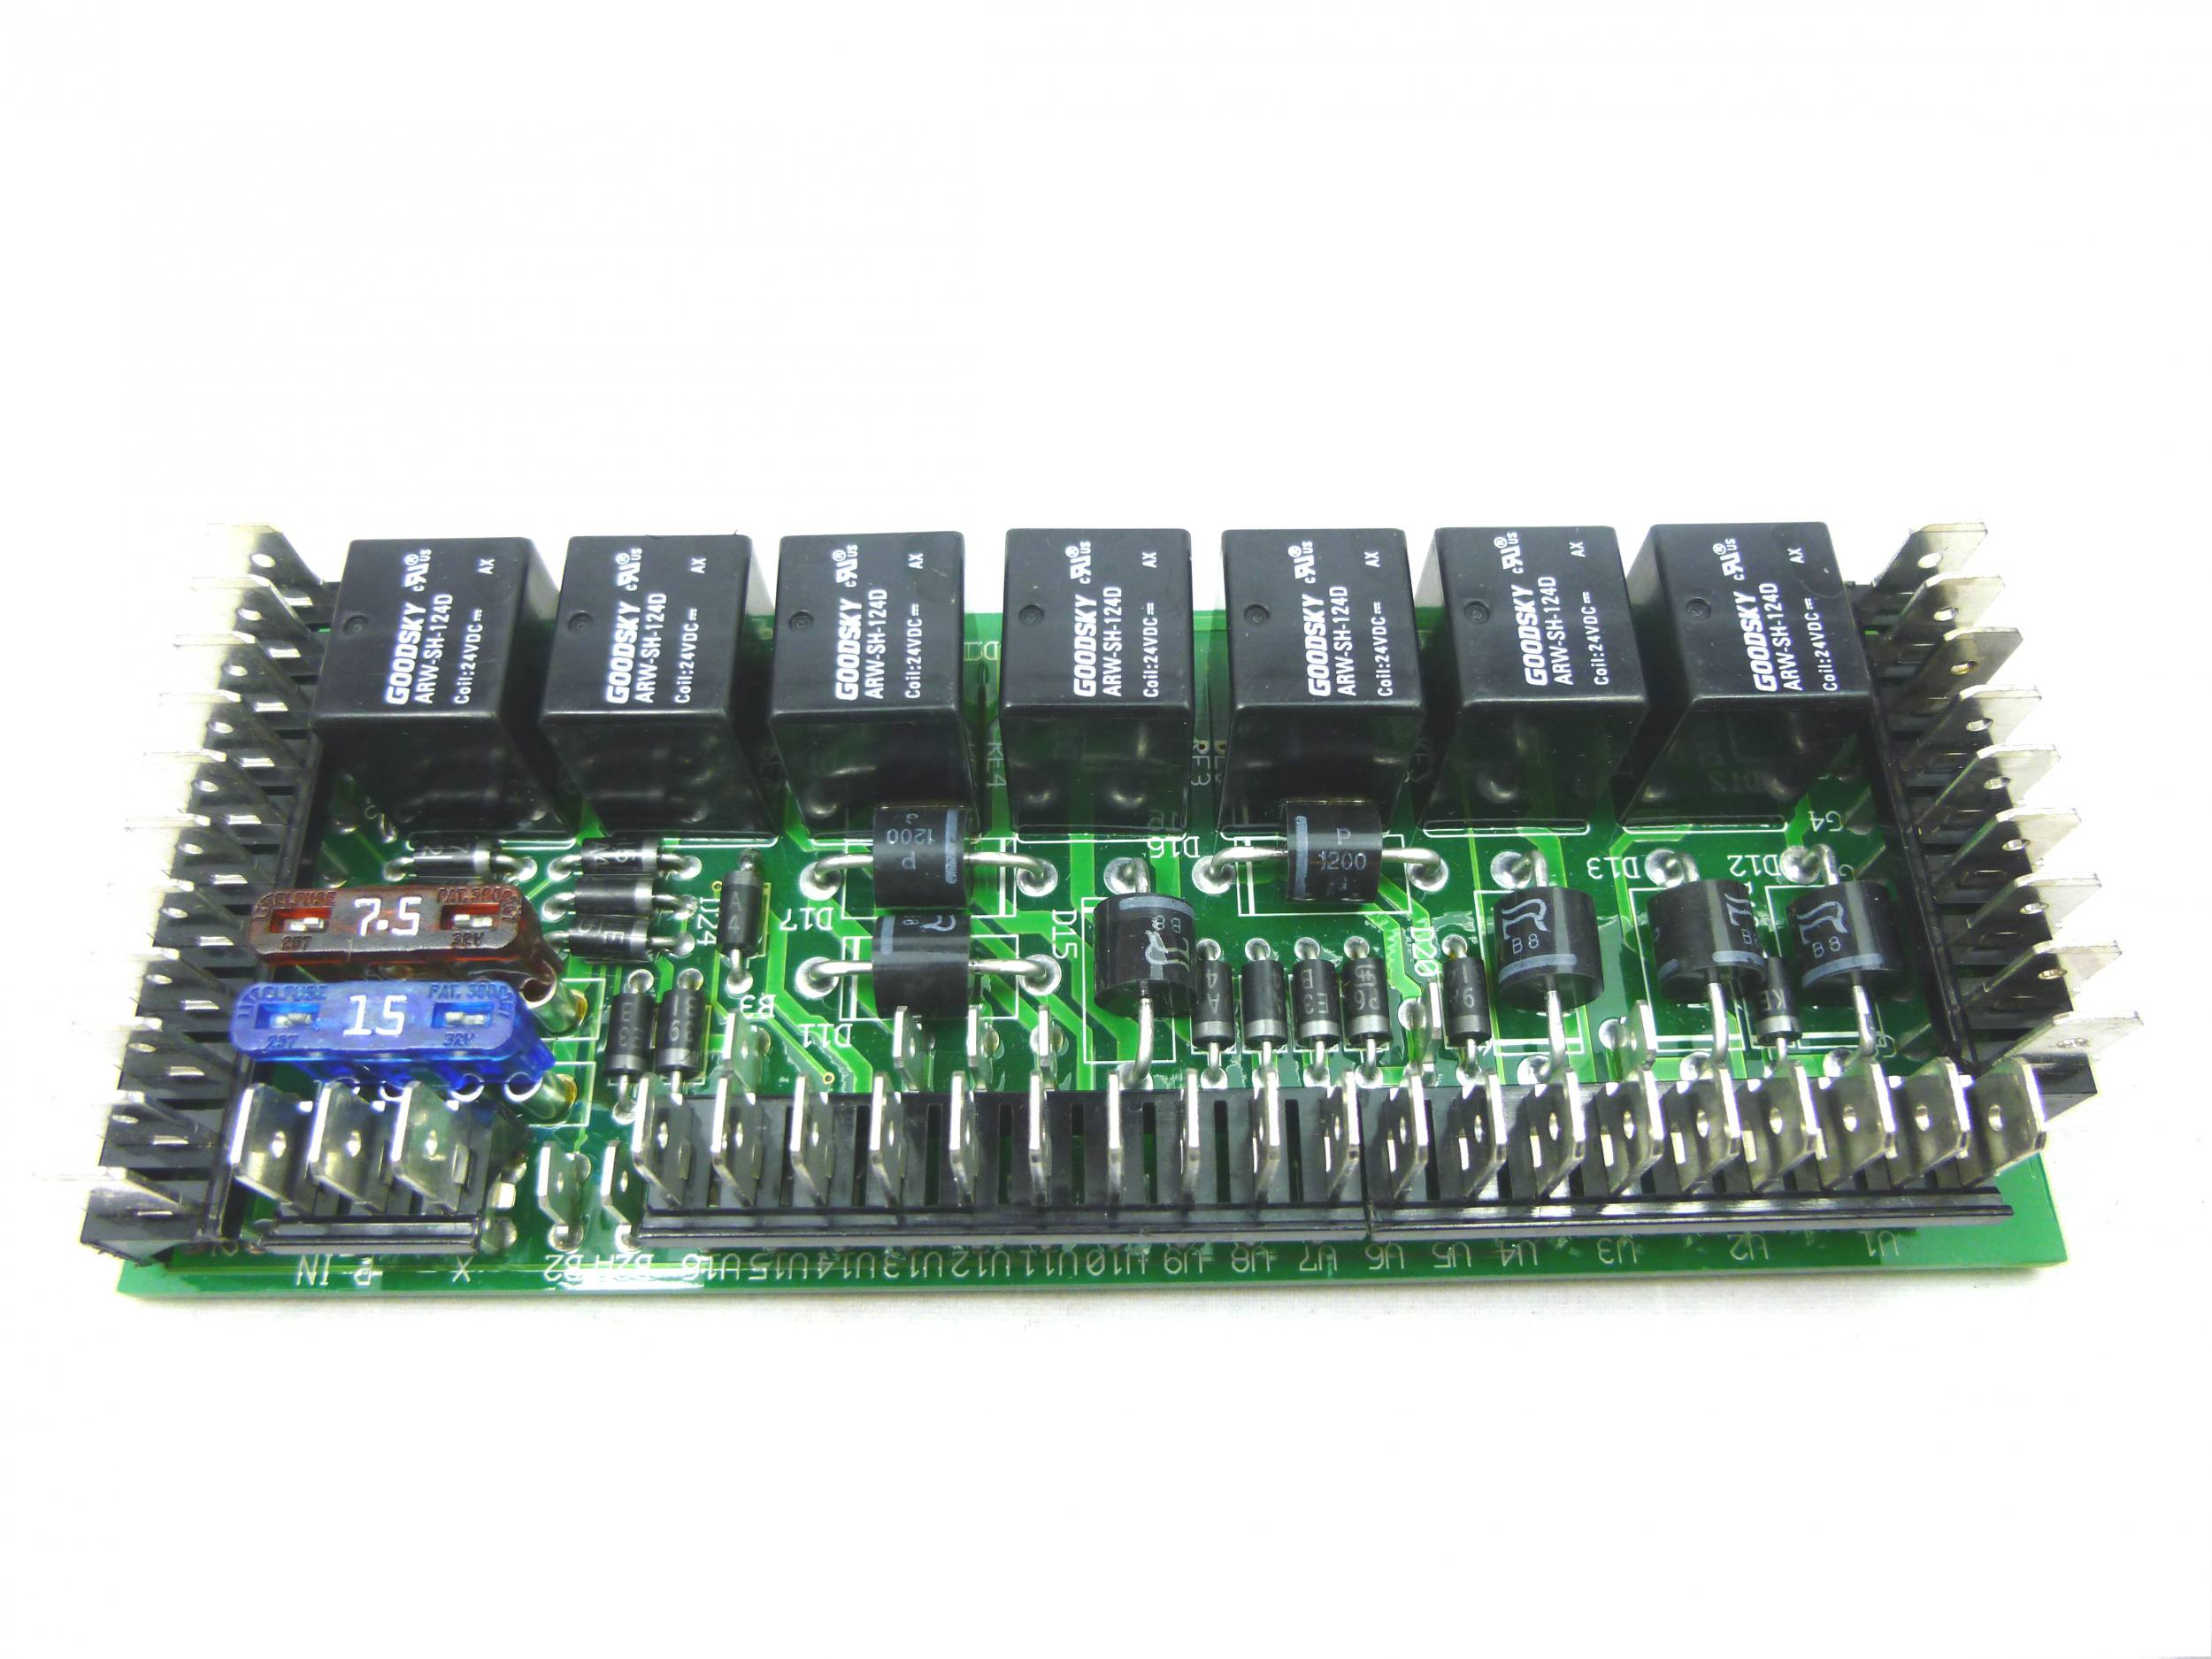 Printed Circuit Board 22066tl At Parts 4 Tail Lifts Sell Boards All Of The That We Have Been Thoroughly Tested By Manufacturer And Proven Fit For Purpose This Ensures Complete Peace Mind Along With